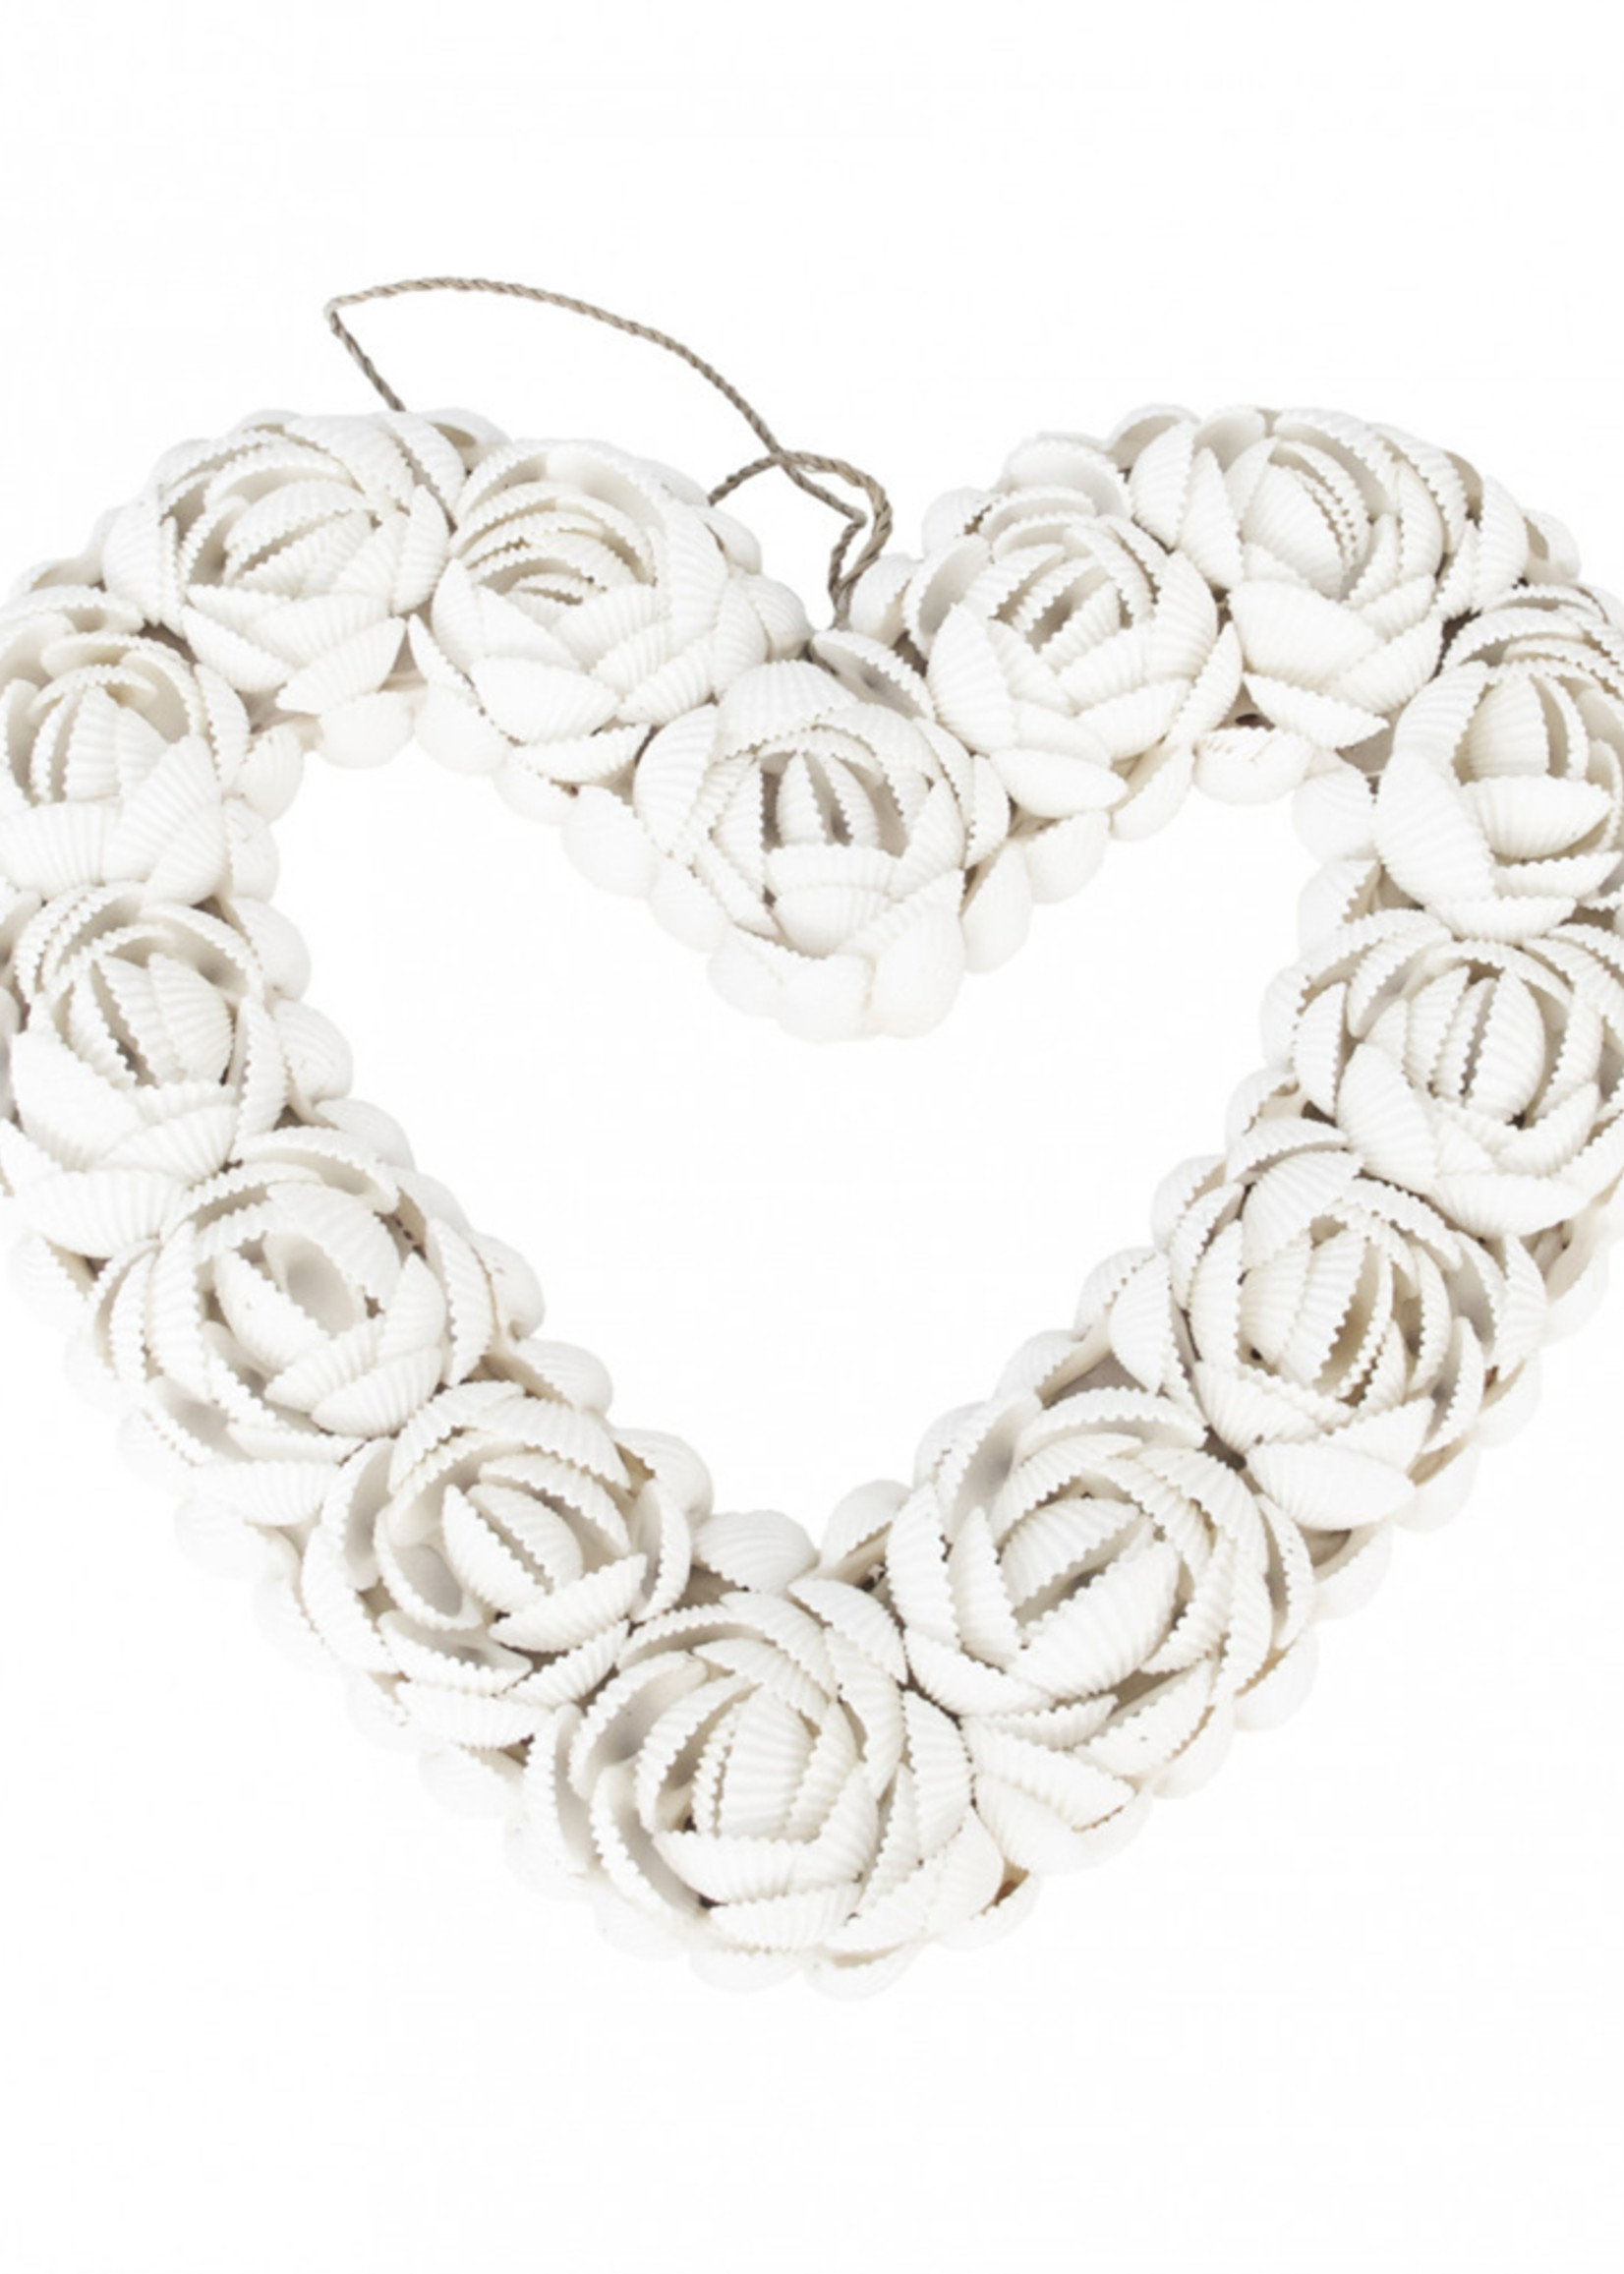 The Shell Heart - White - L